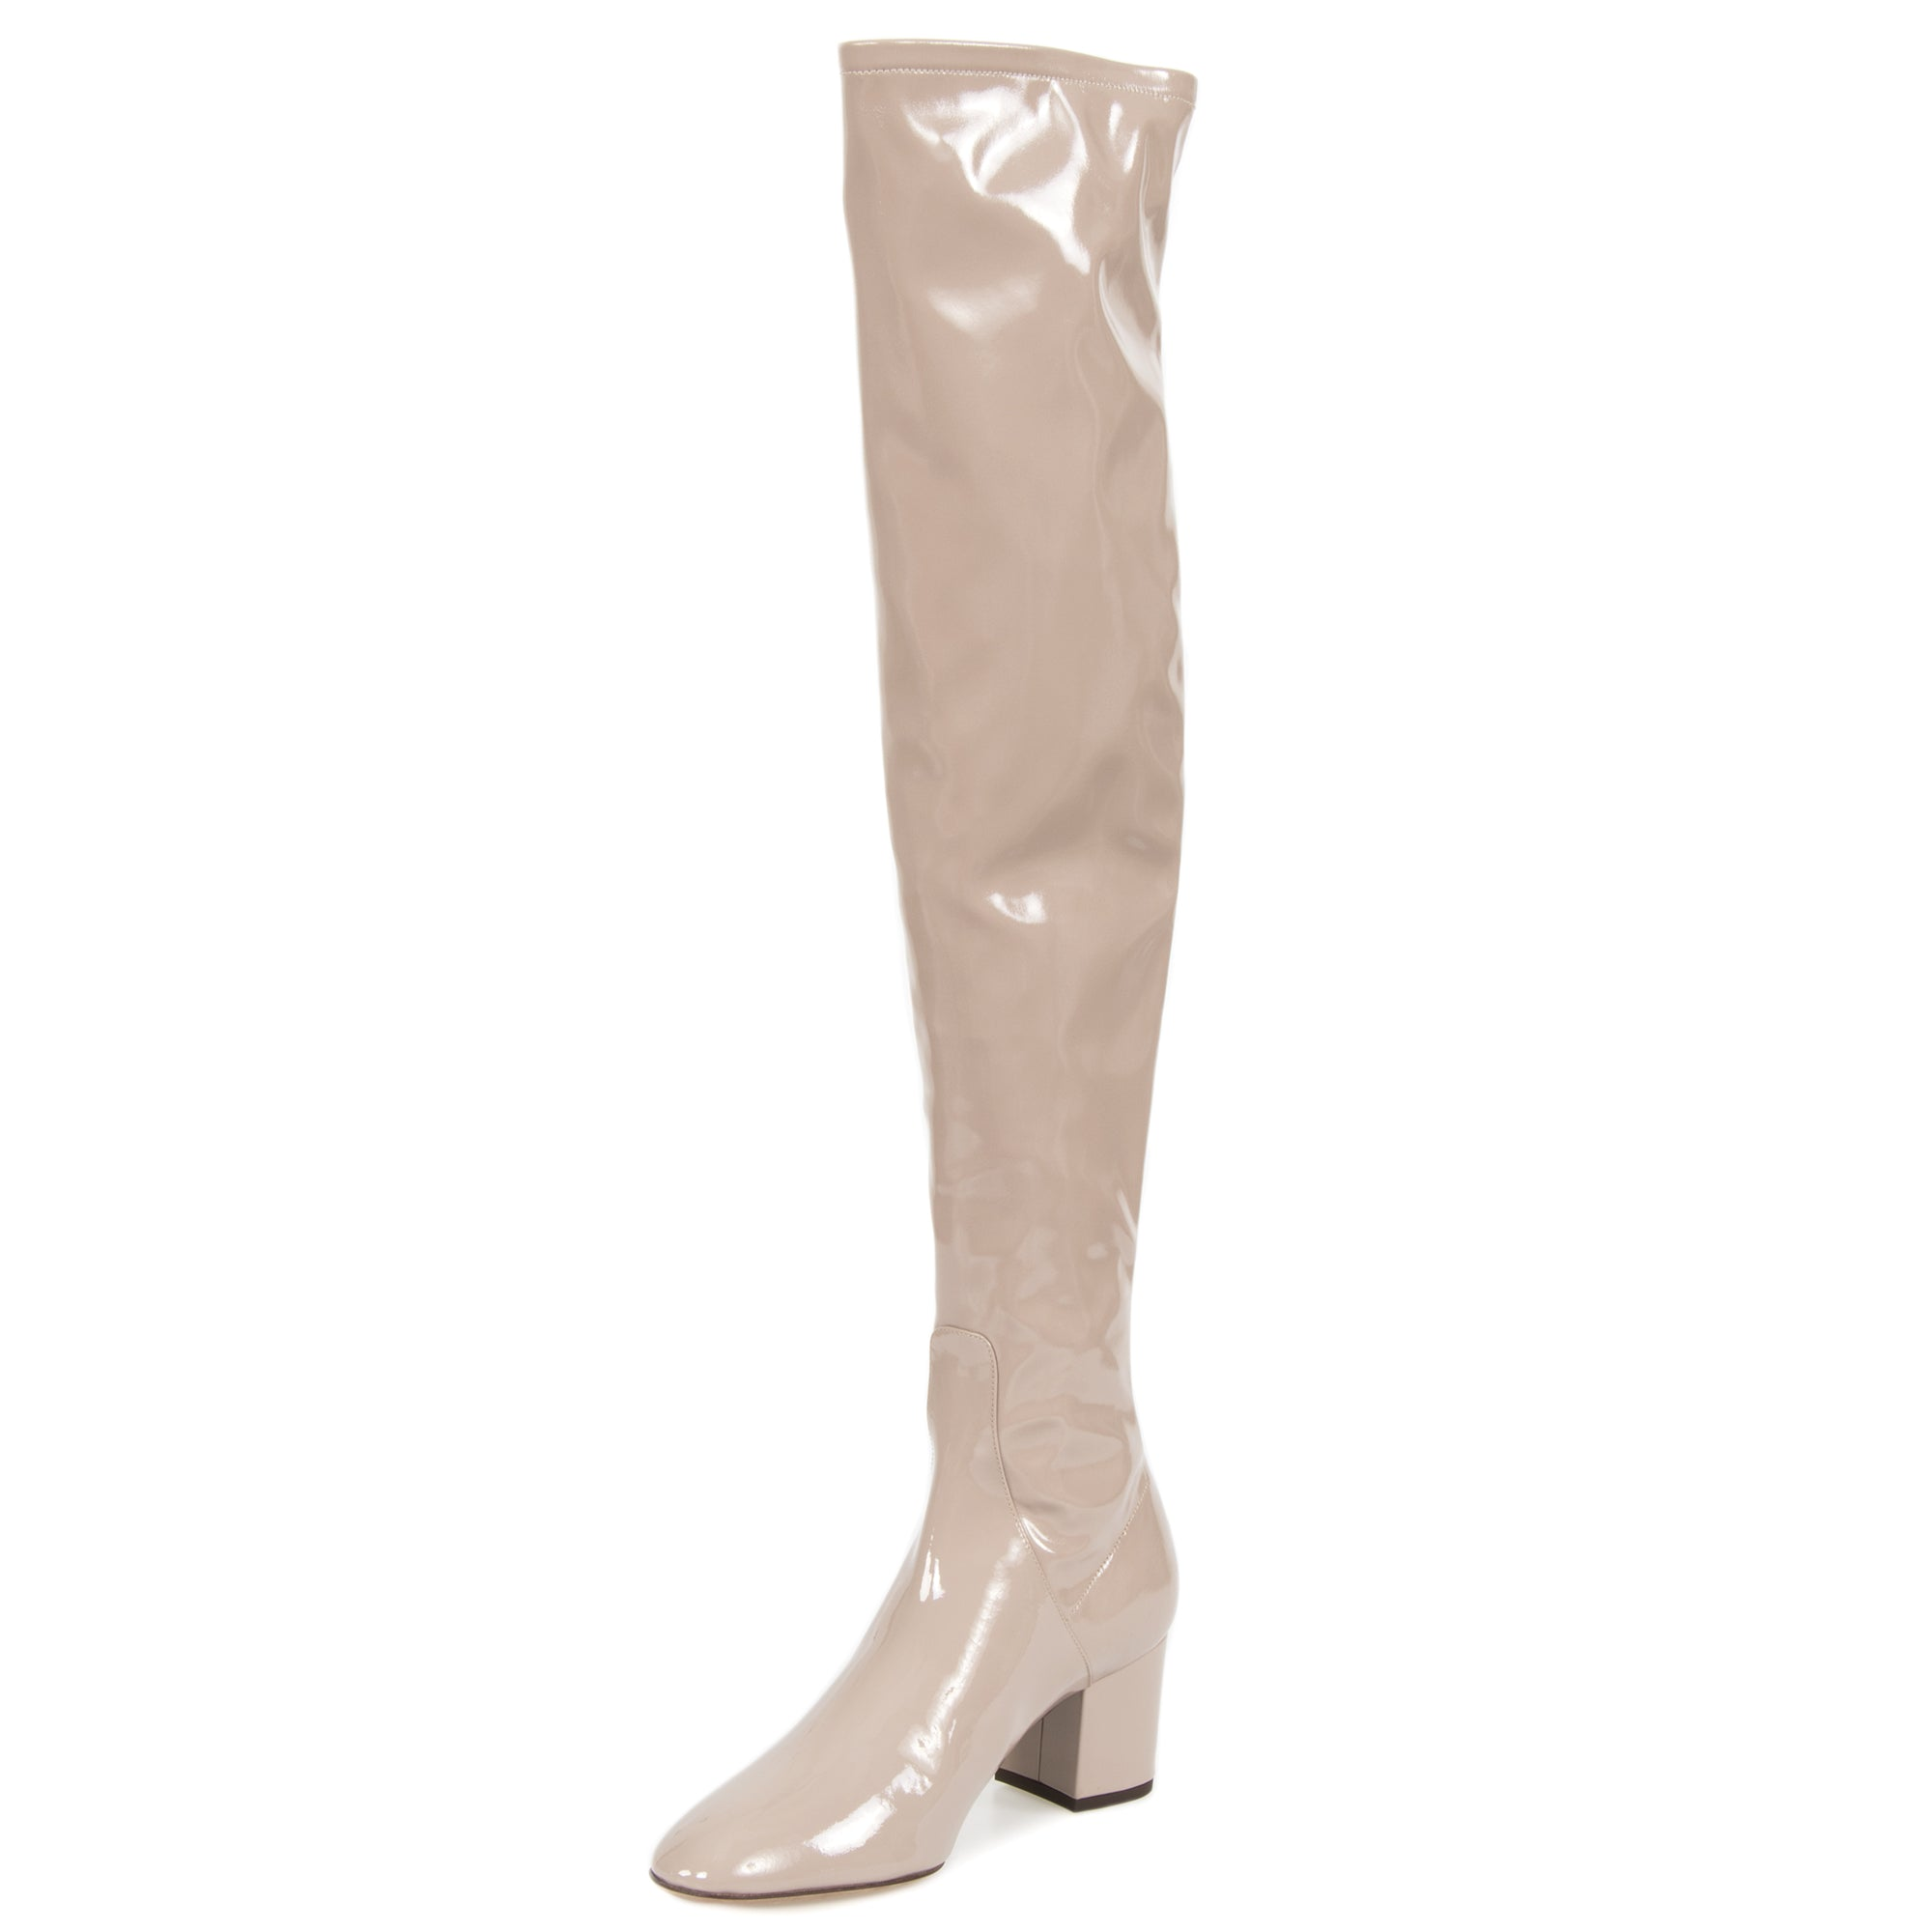 Valentino Patent Leather Over The Knee Boots | Poudre | Size 39.5